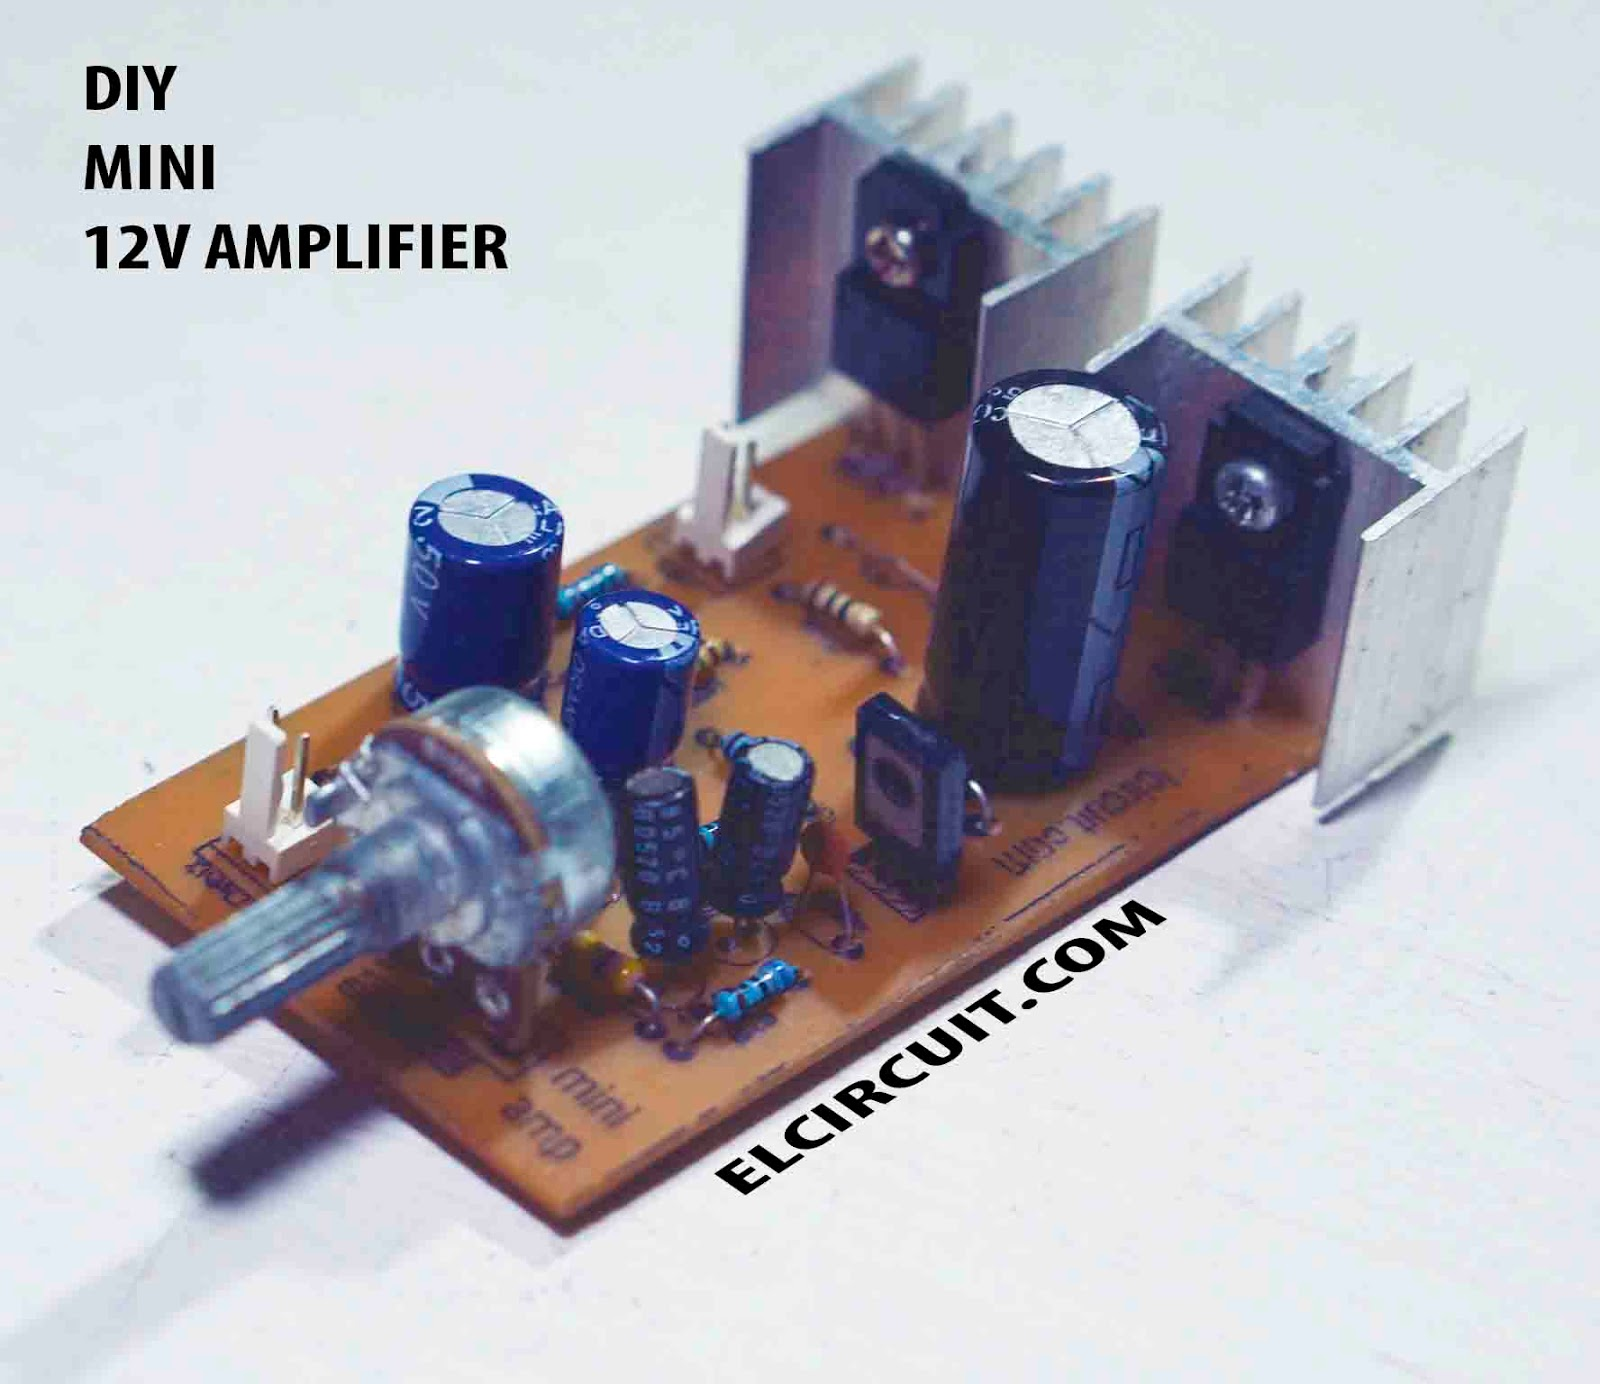 Power Ampli Mini Dengan Transistor : diy mini 12volt power amplifier electronic circuit ~ Russianpoet.info Haus und Dekorationen